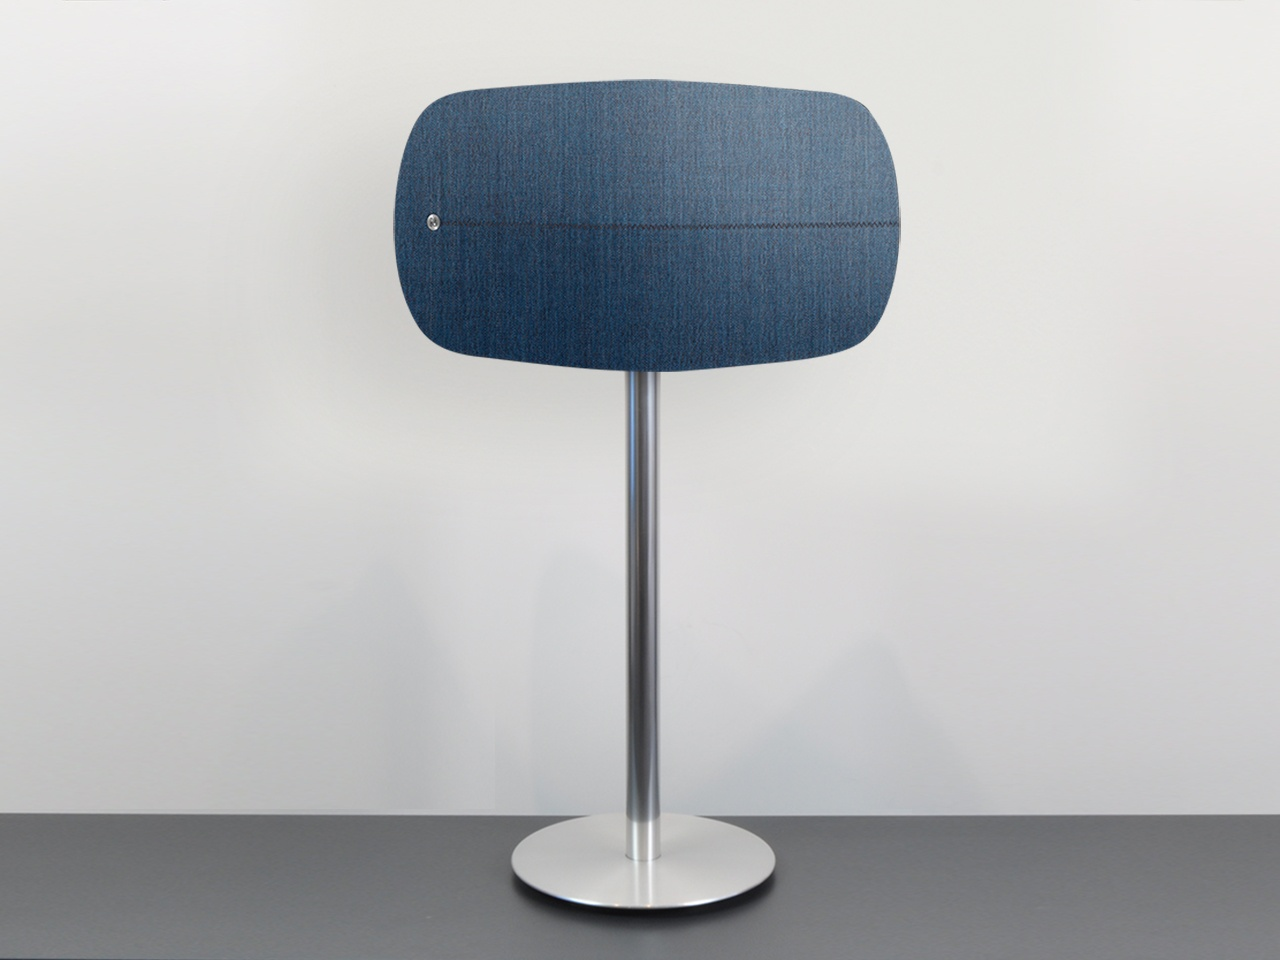 beoplay a6  floor stand  table stand